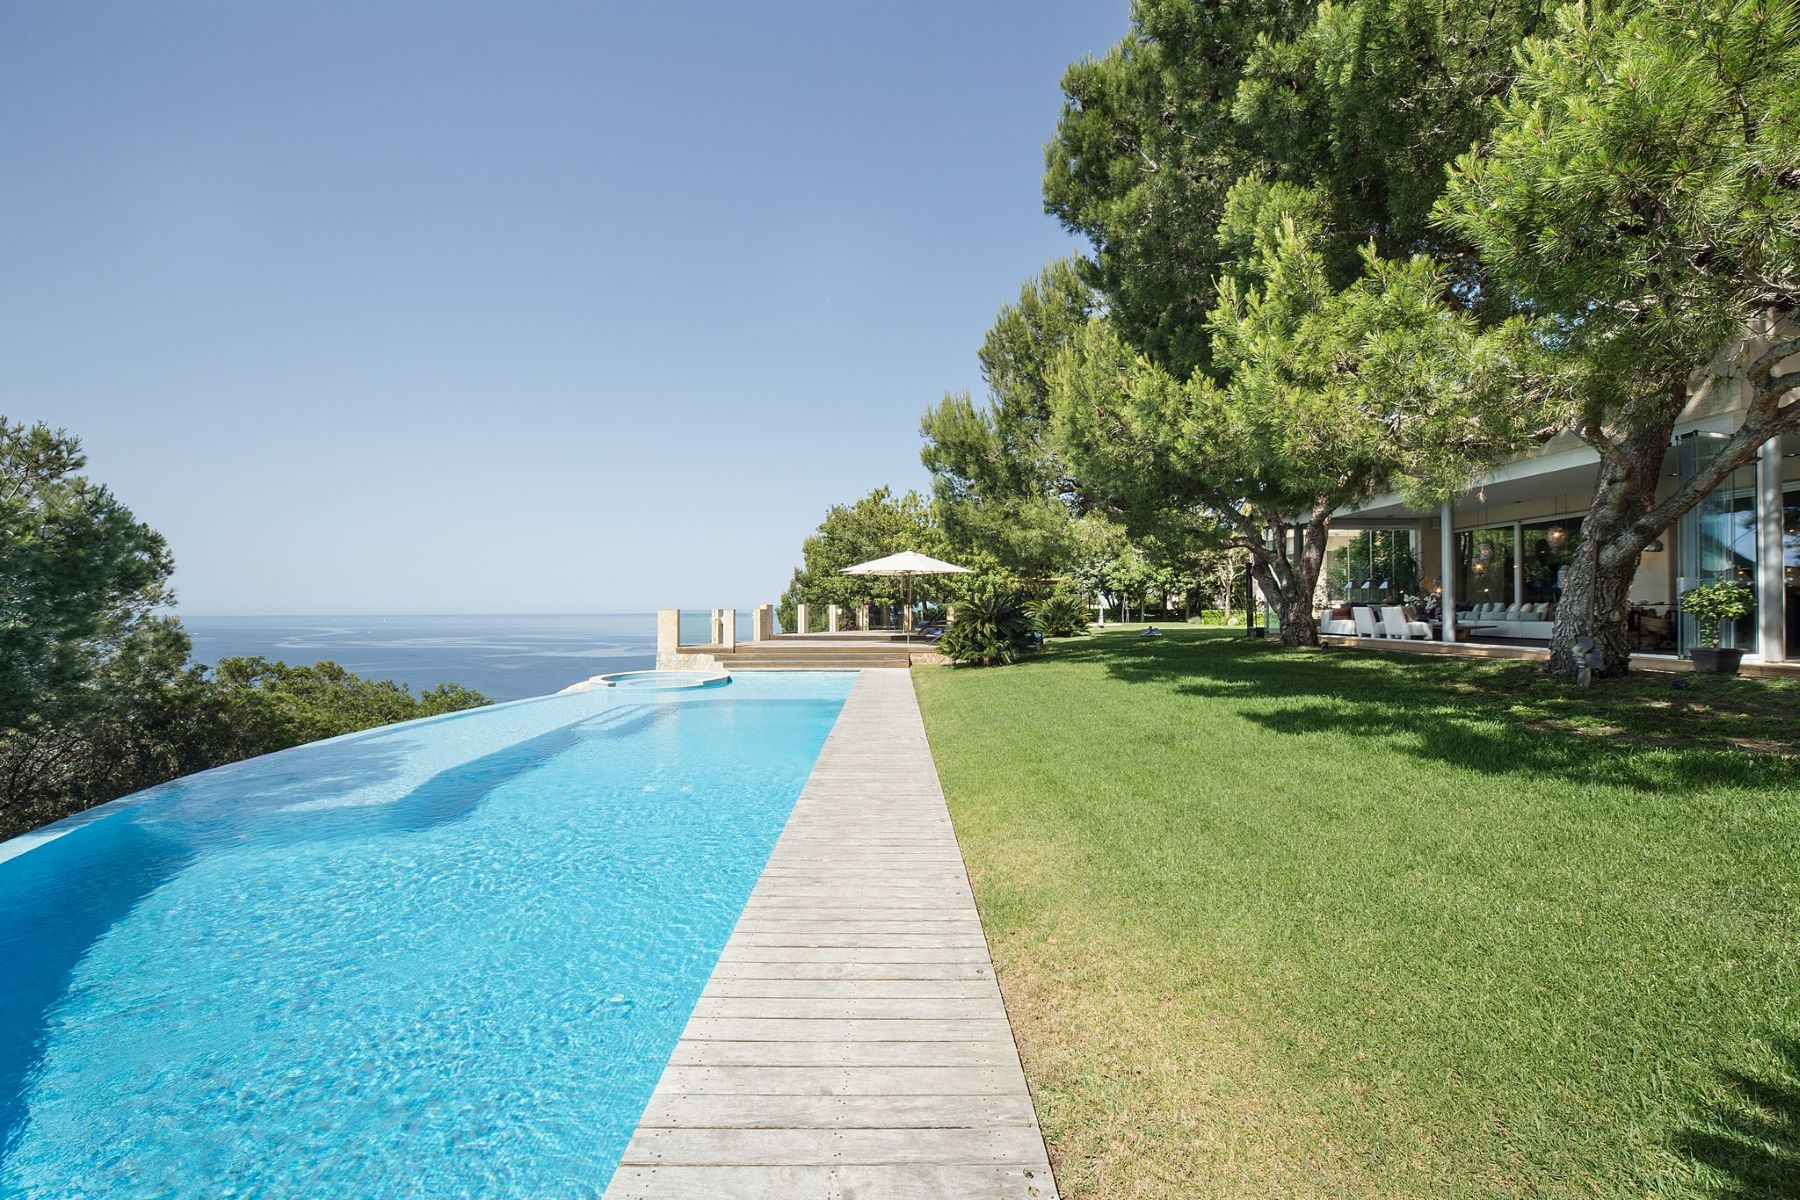 Single Family Home for Sale at Modern villa on the coast of Puig de Ros Other Balearic Islands, Balearic Islands, Spain